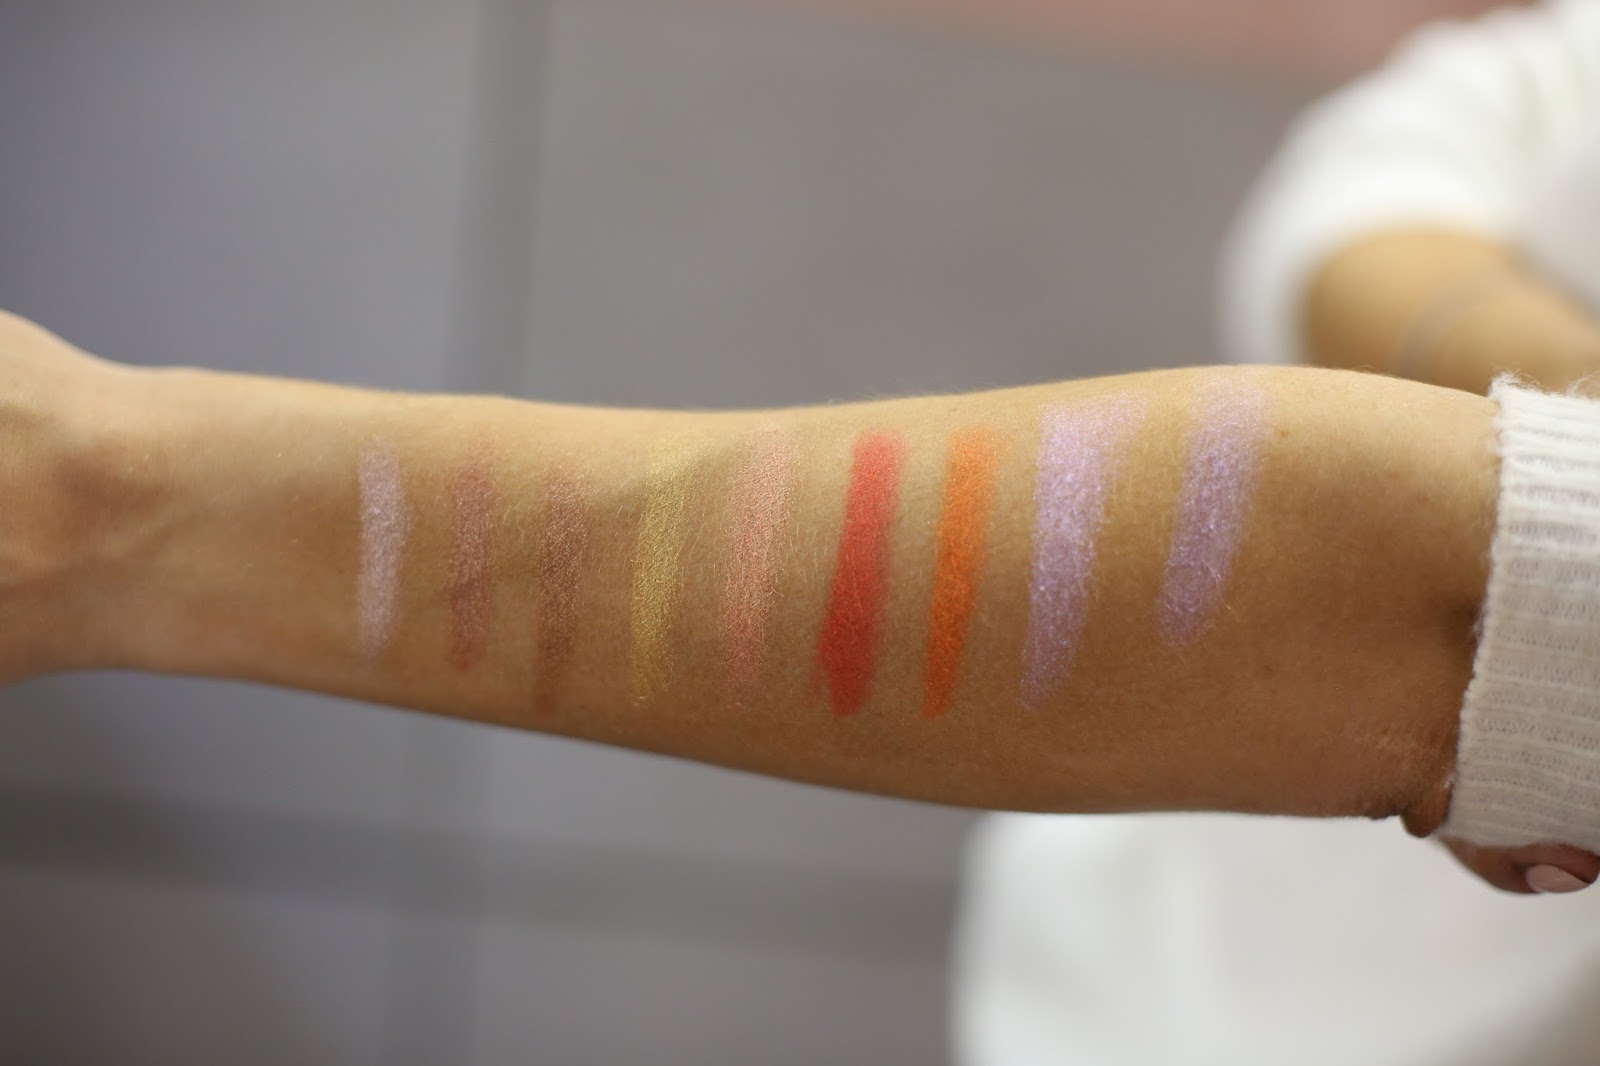 Swatches of Fenty Match Stix Skinsticks shimmer